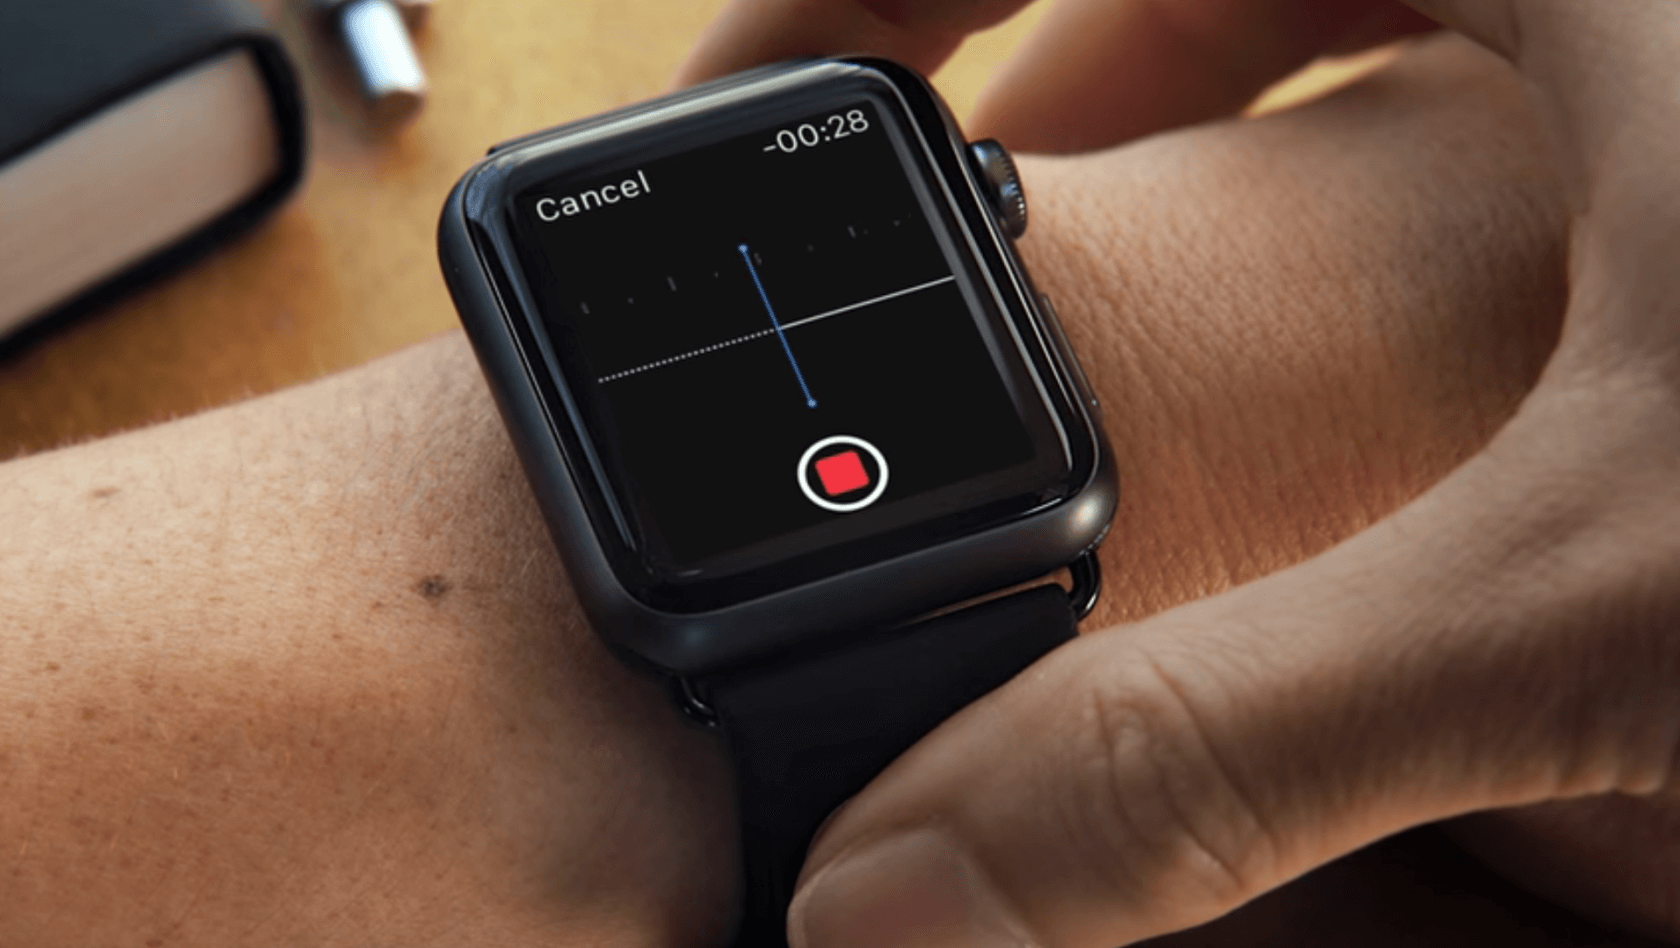 Apple Watch KardiaBand can detect high potassium levels without a